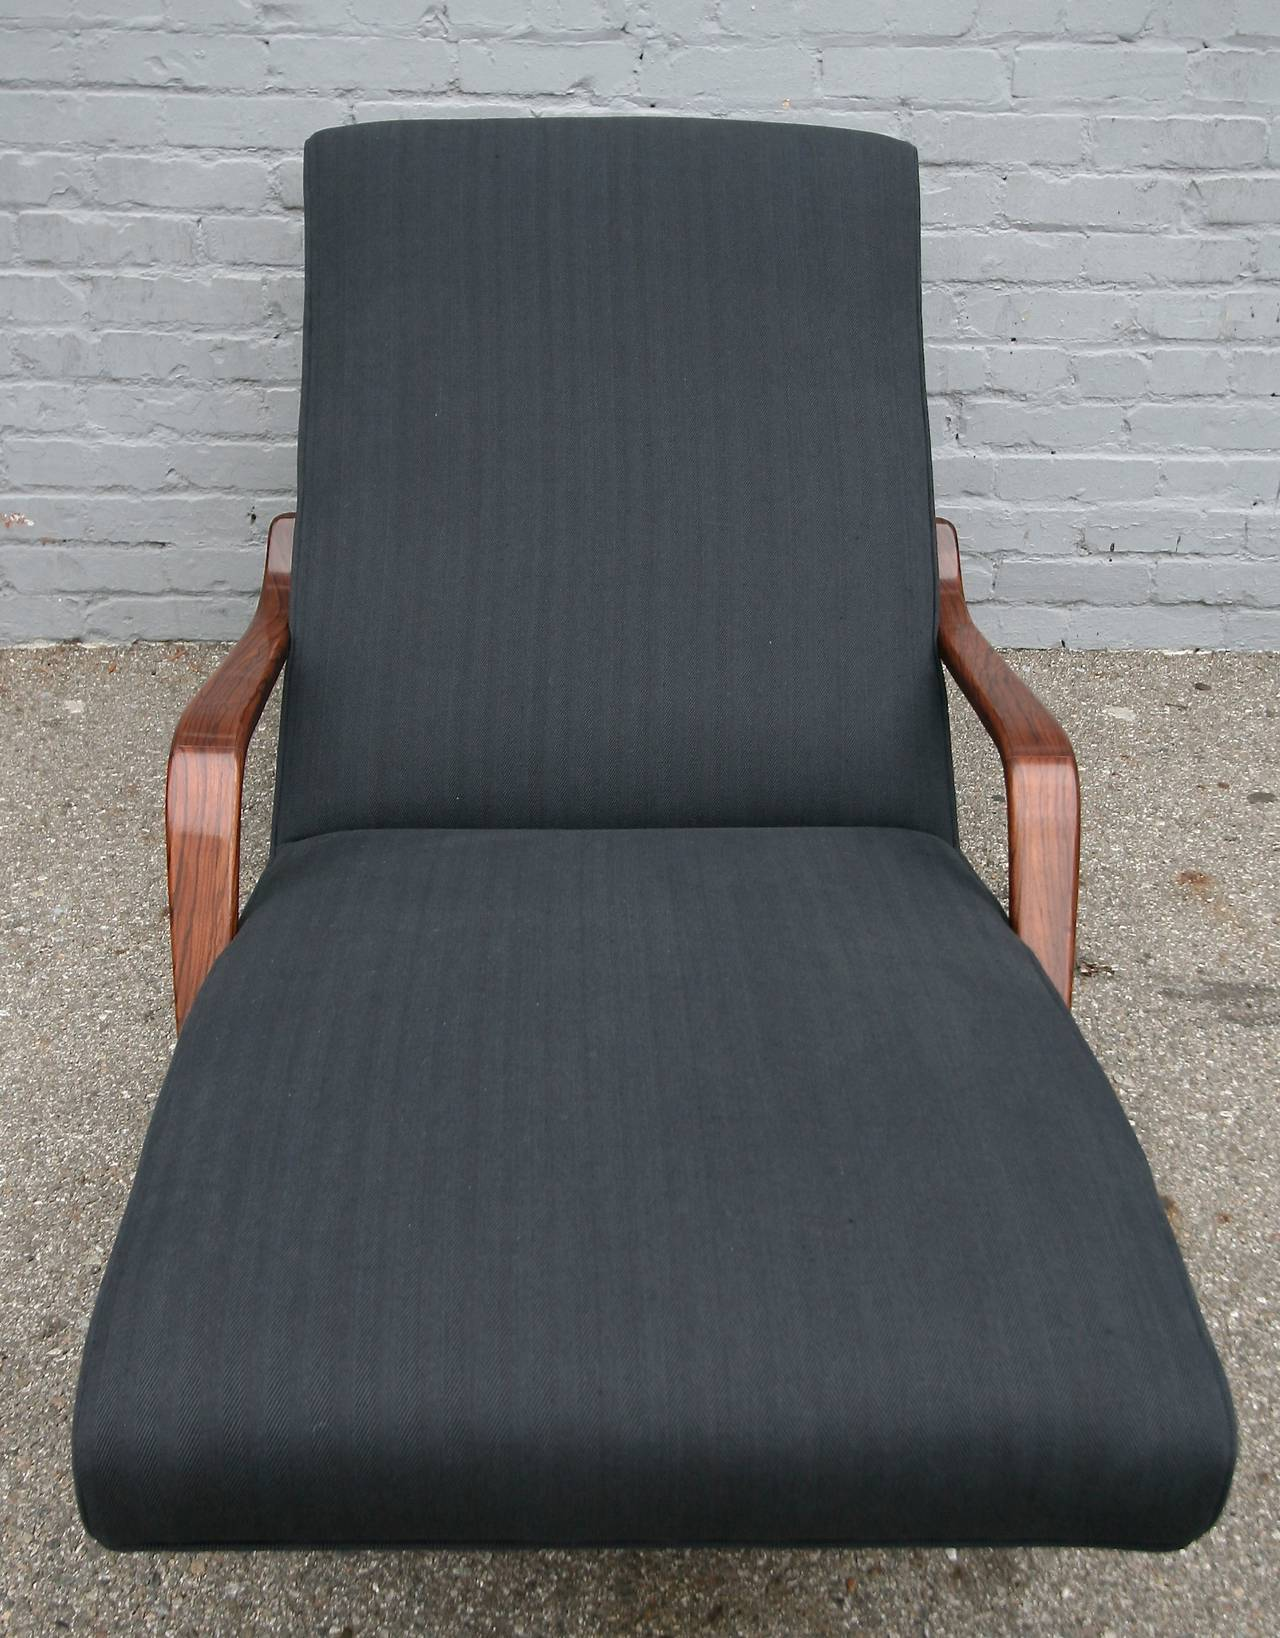 Scapinelli 1960s Brazilian Rosewood Chaise Longue For Sale 3